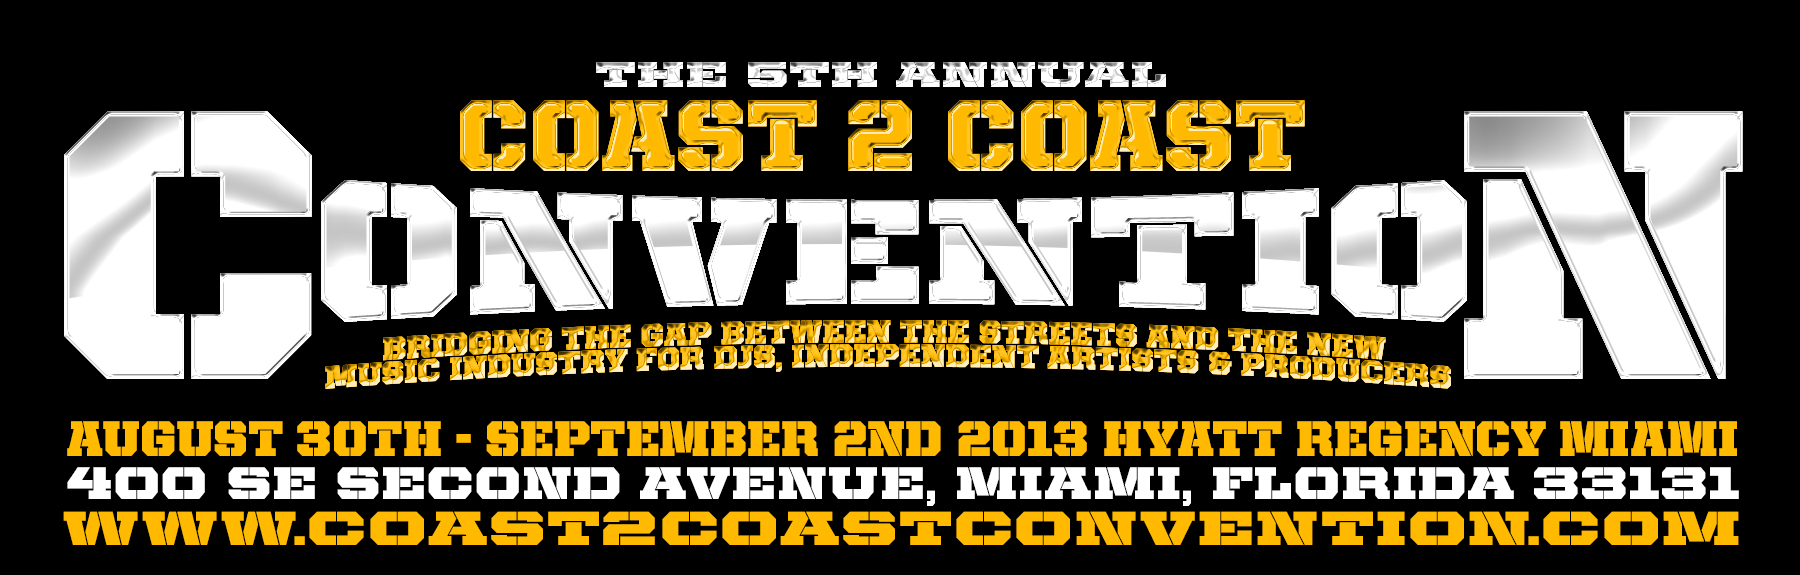 Coast 2 Coast Convention 2013 Logo